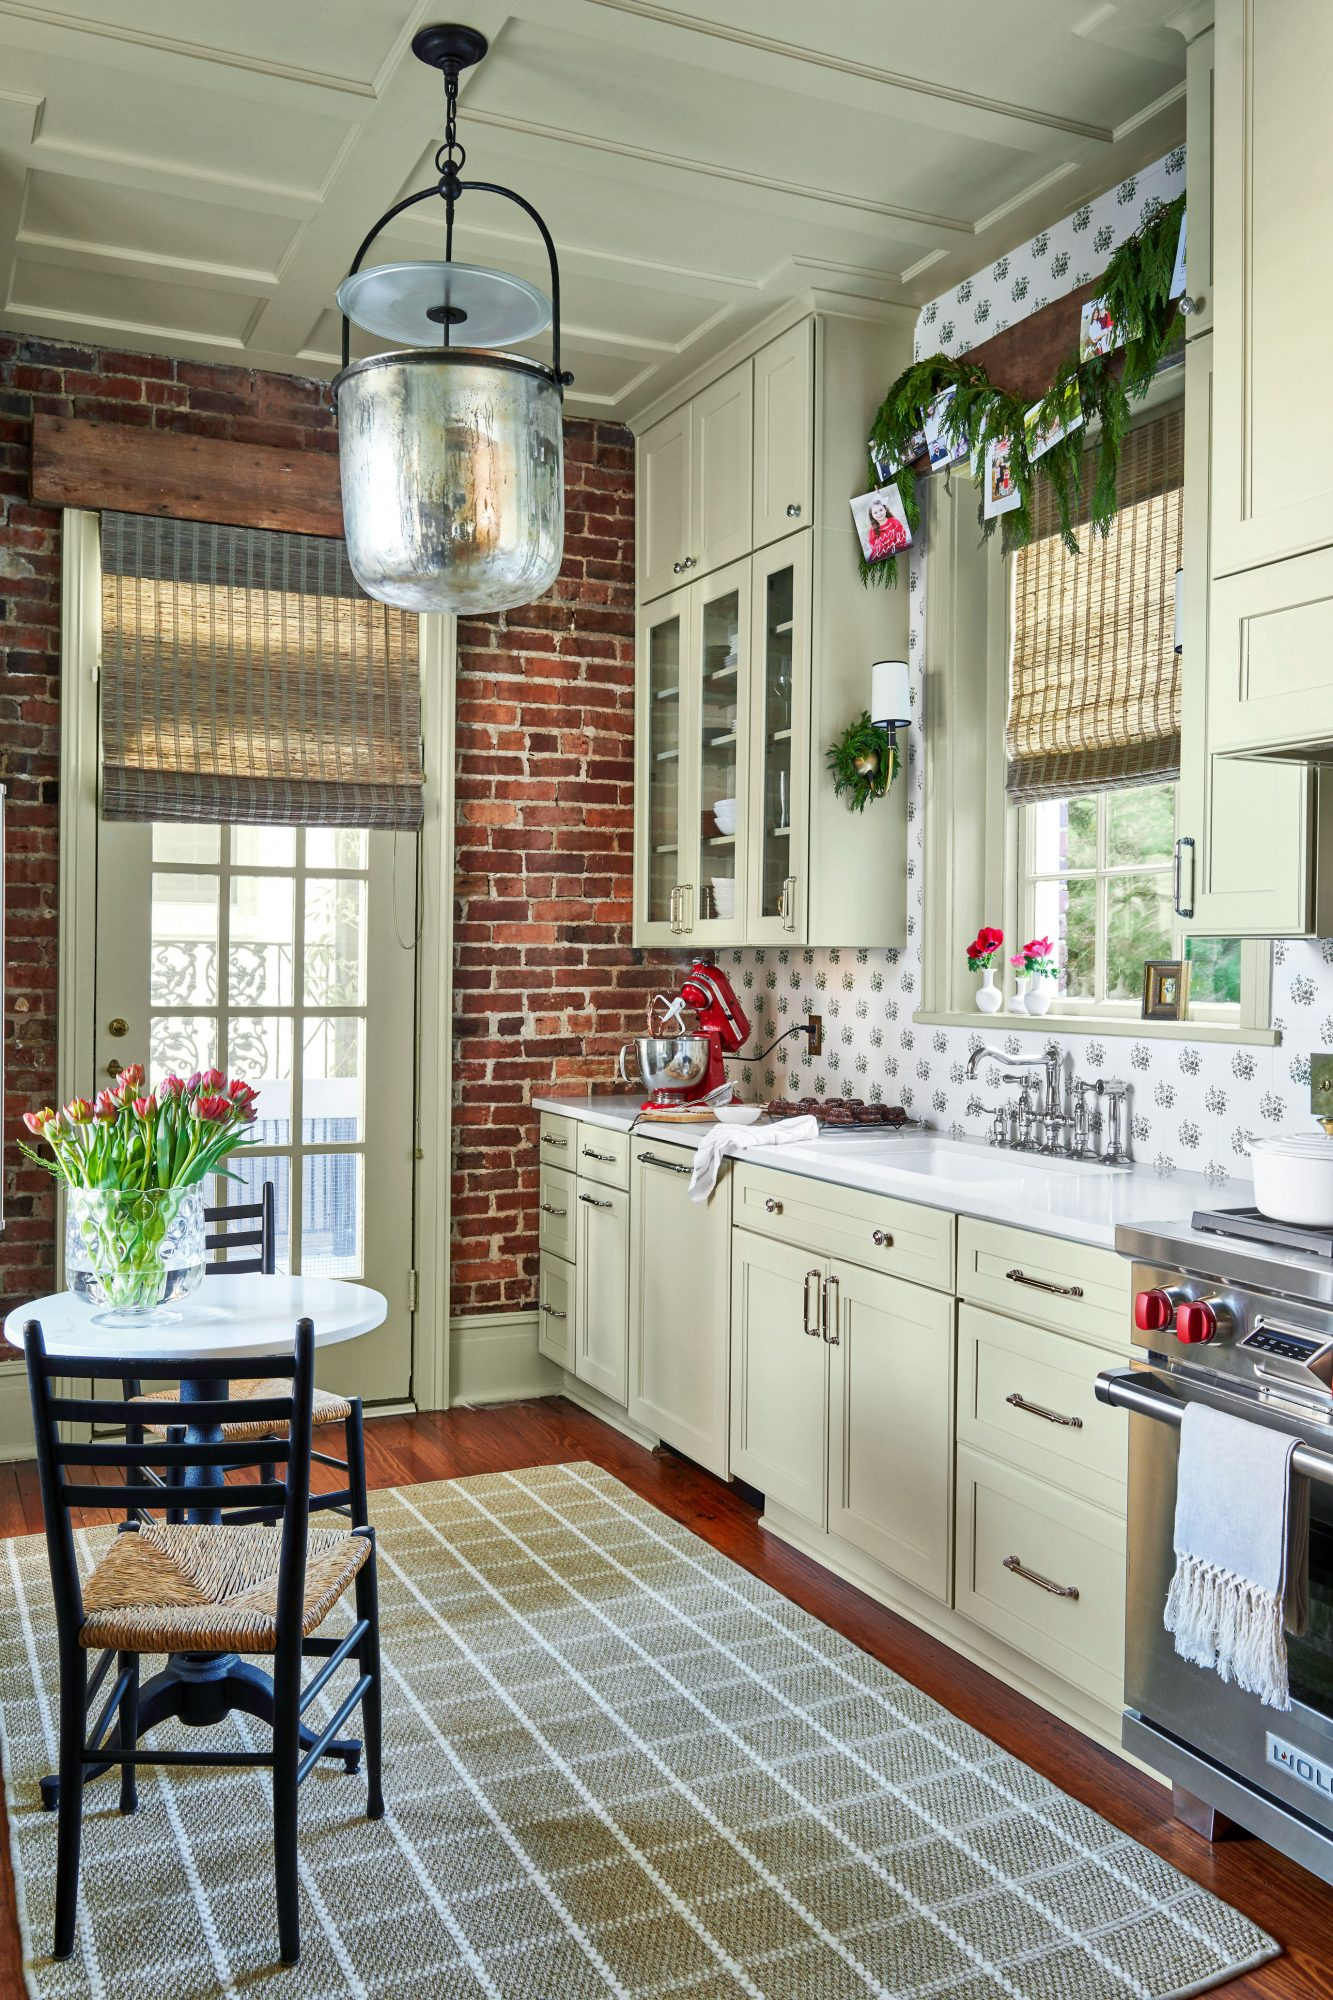 Galley kitchen with light green cabinetry and exposed brick wall